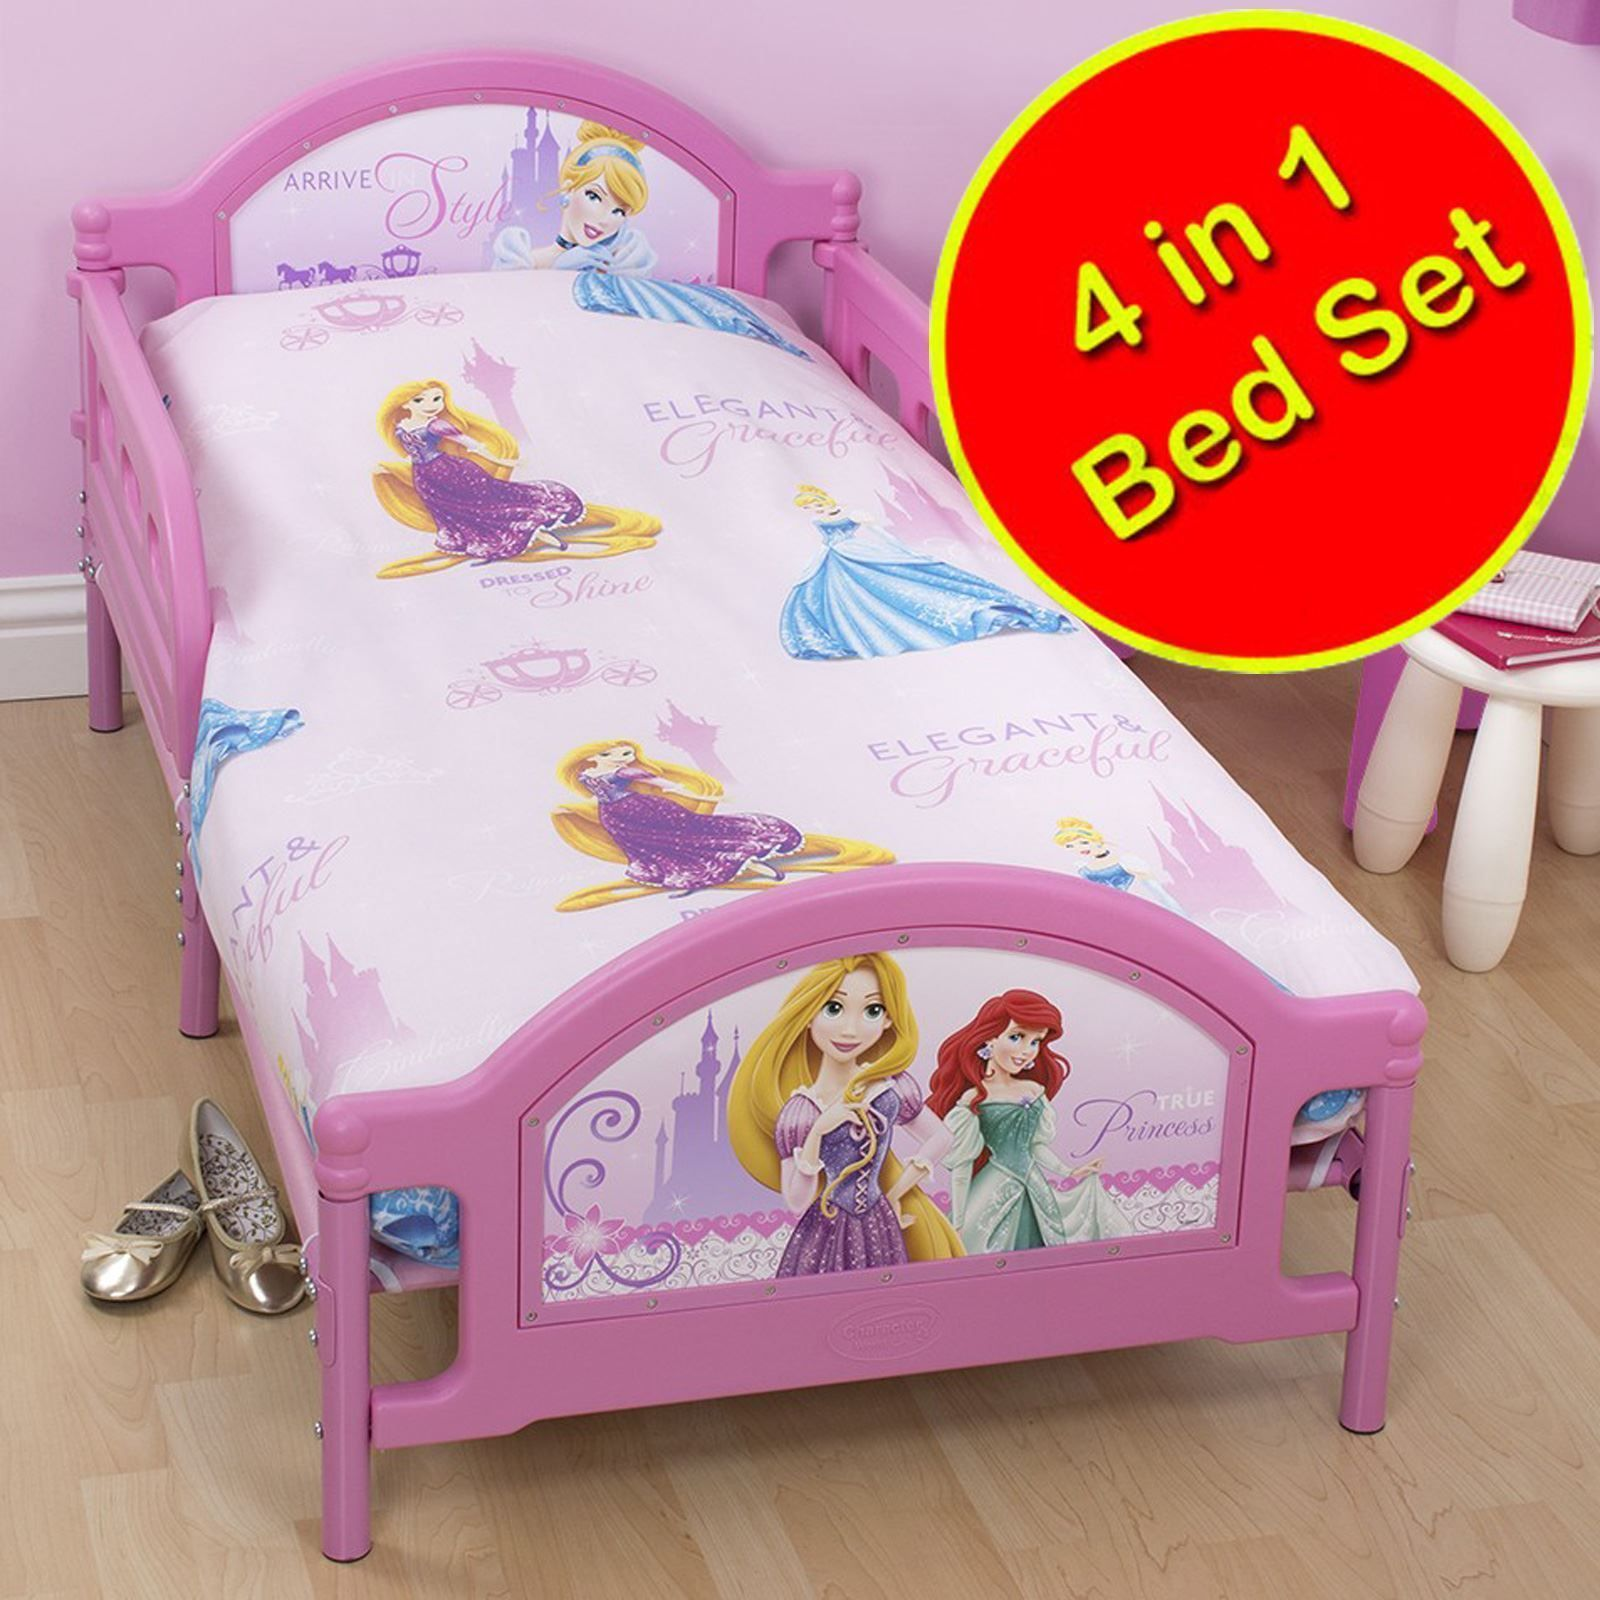 Disney Princess Sparkle Junior Rotary 4 In 1 Bedding Set